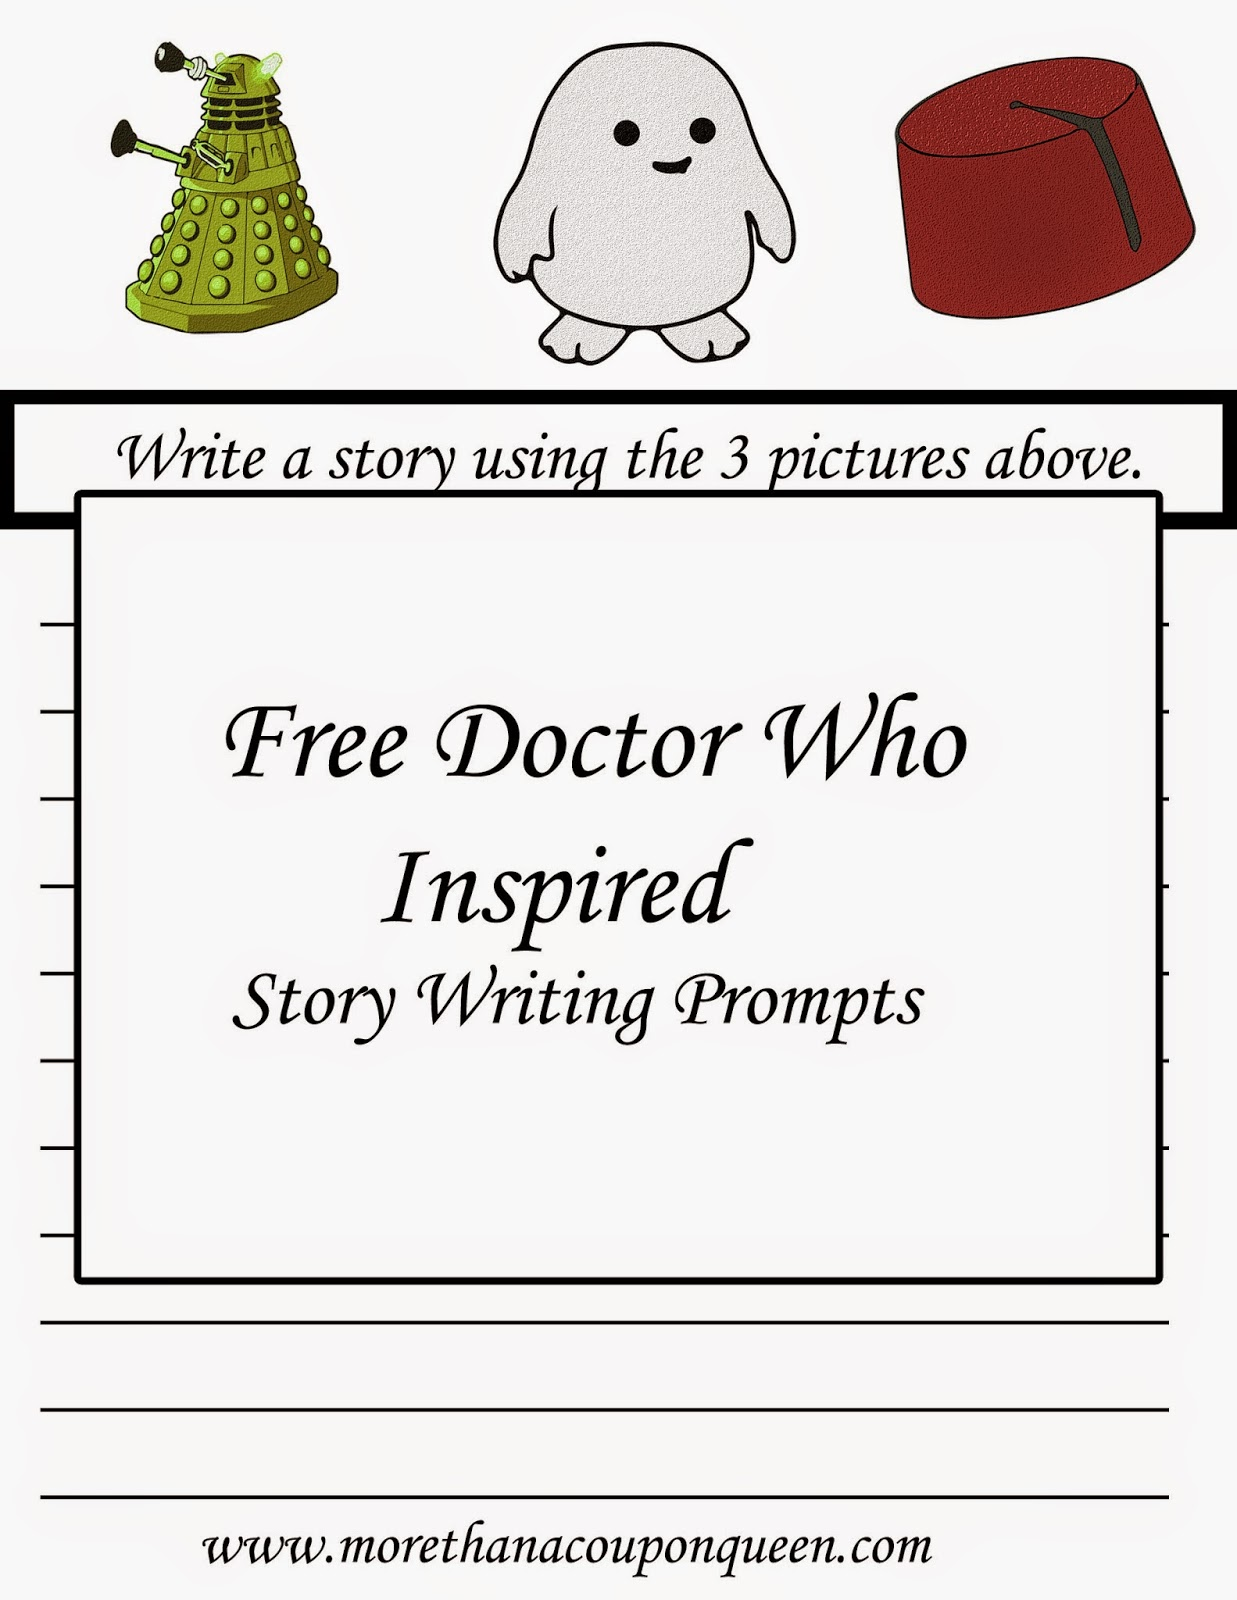 Free Doctor Who Inspired Story Writing Prompts